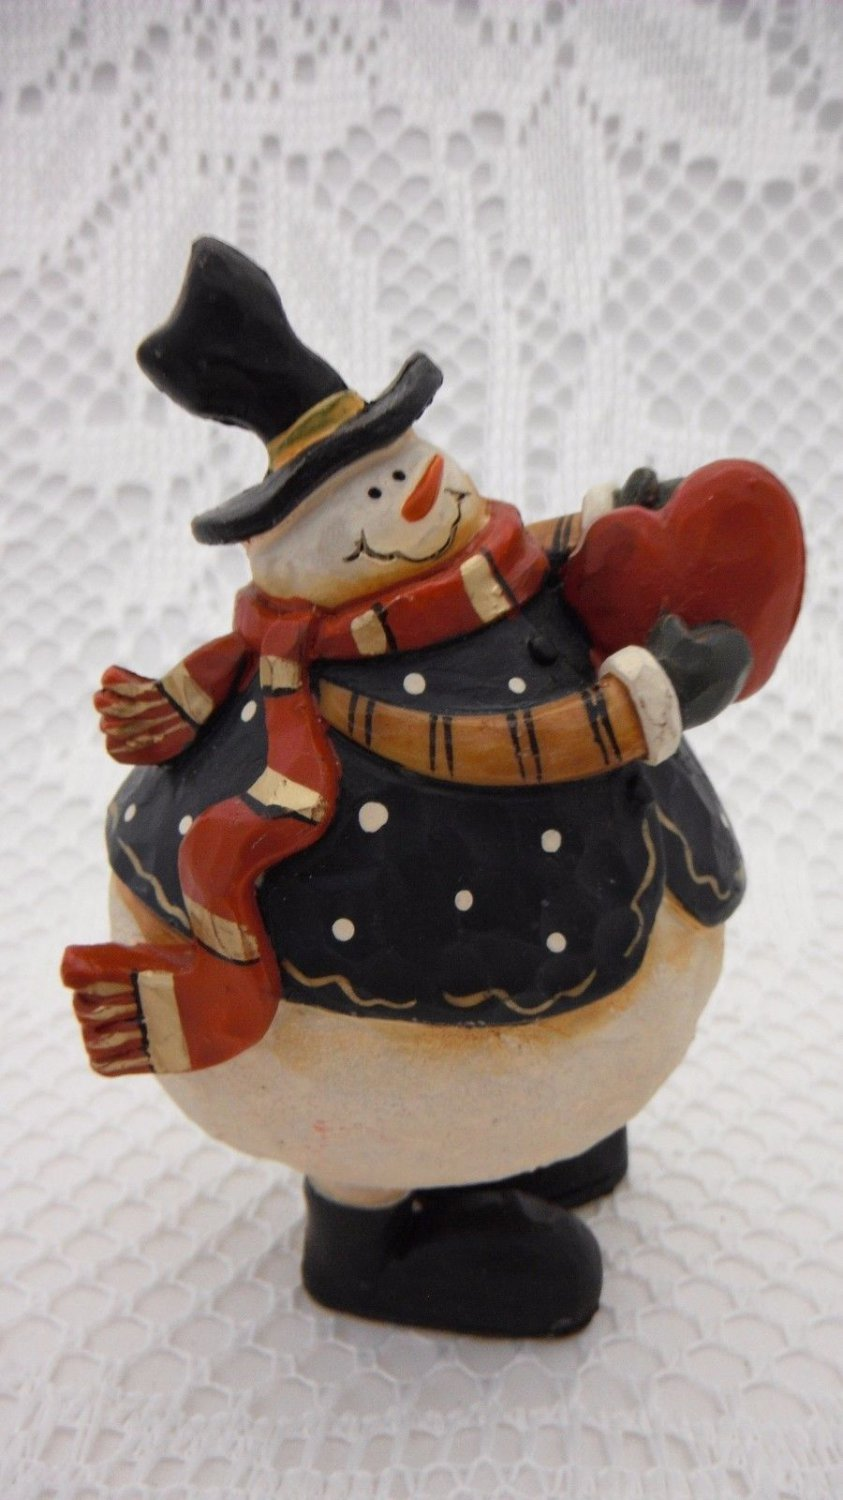 Ceramic Snowman Full of Love Statue Christmas Decoration Cheerful Heart tblvl1